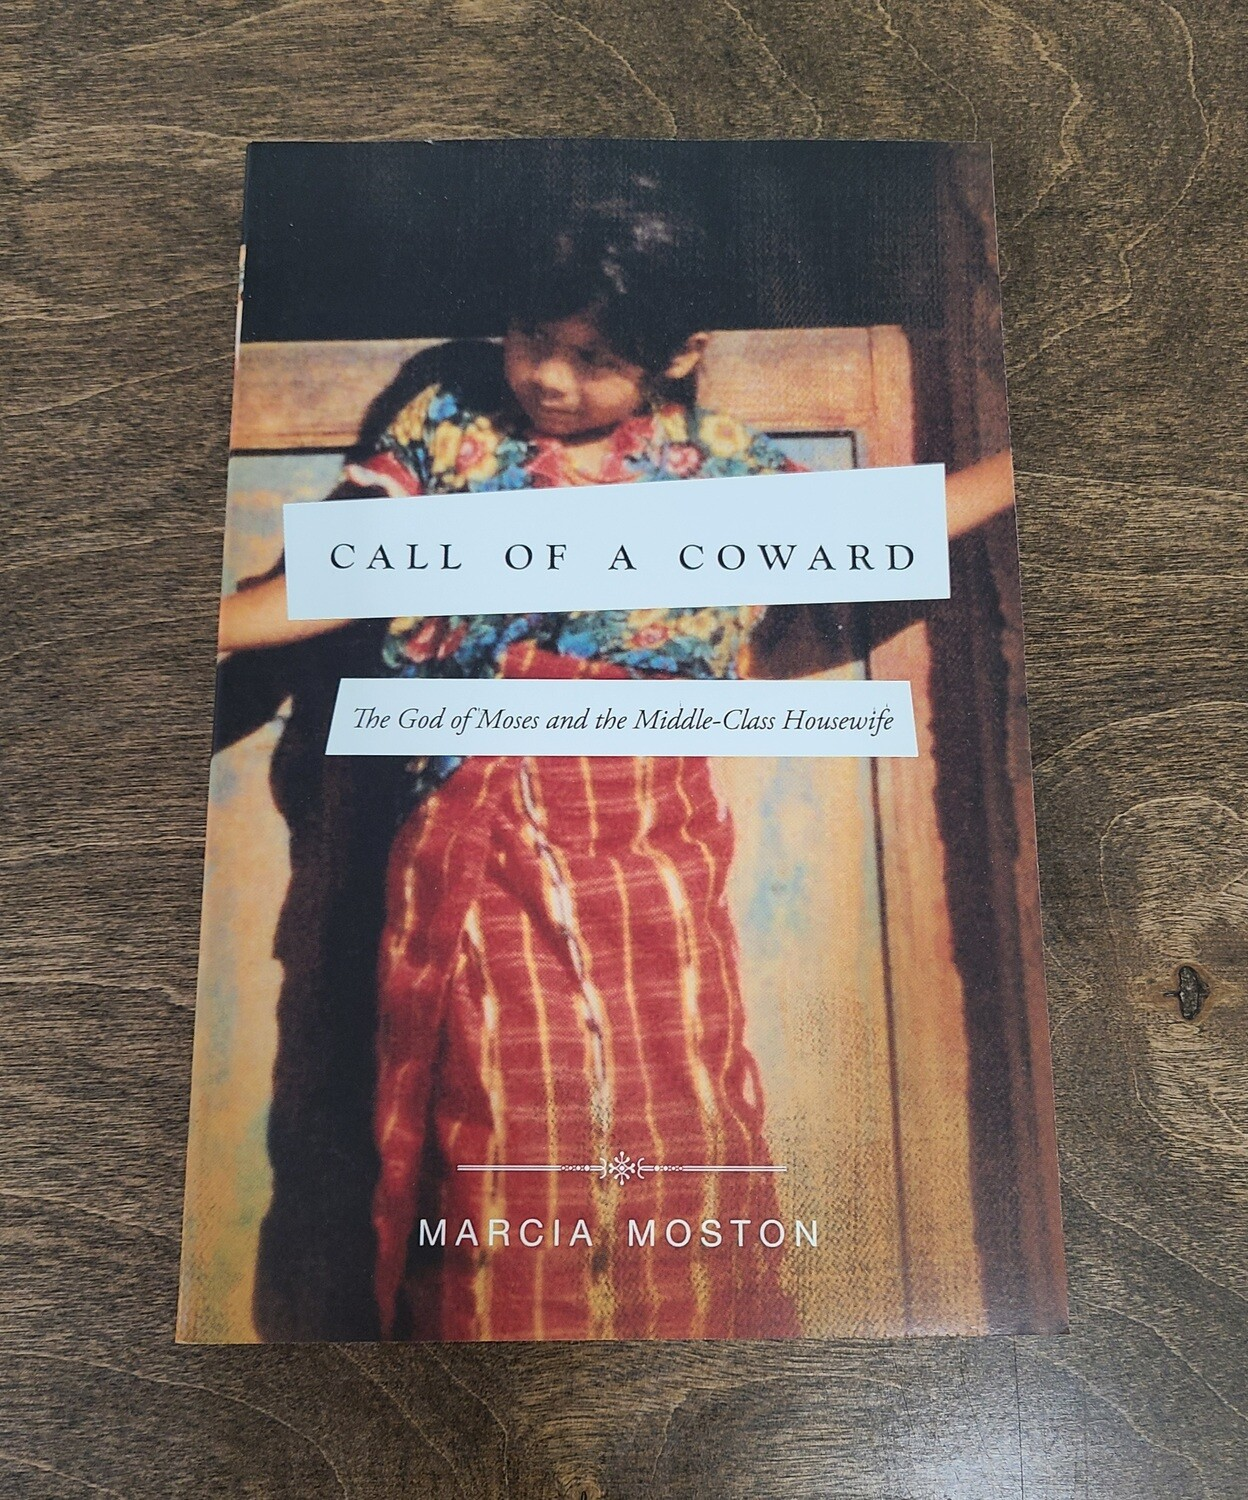 Call of a Coward by Marcia Moston